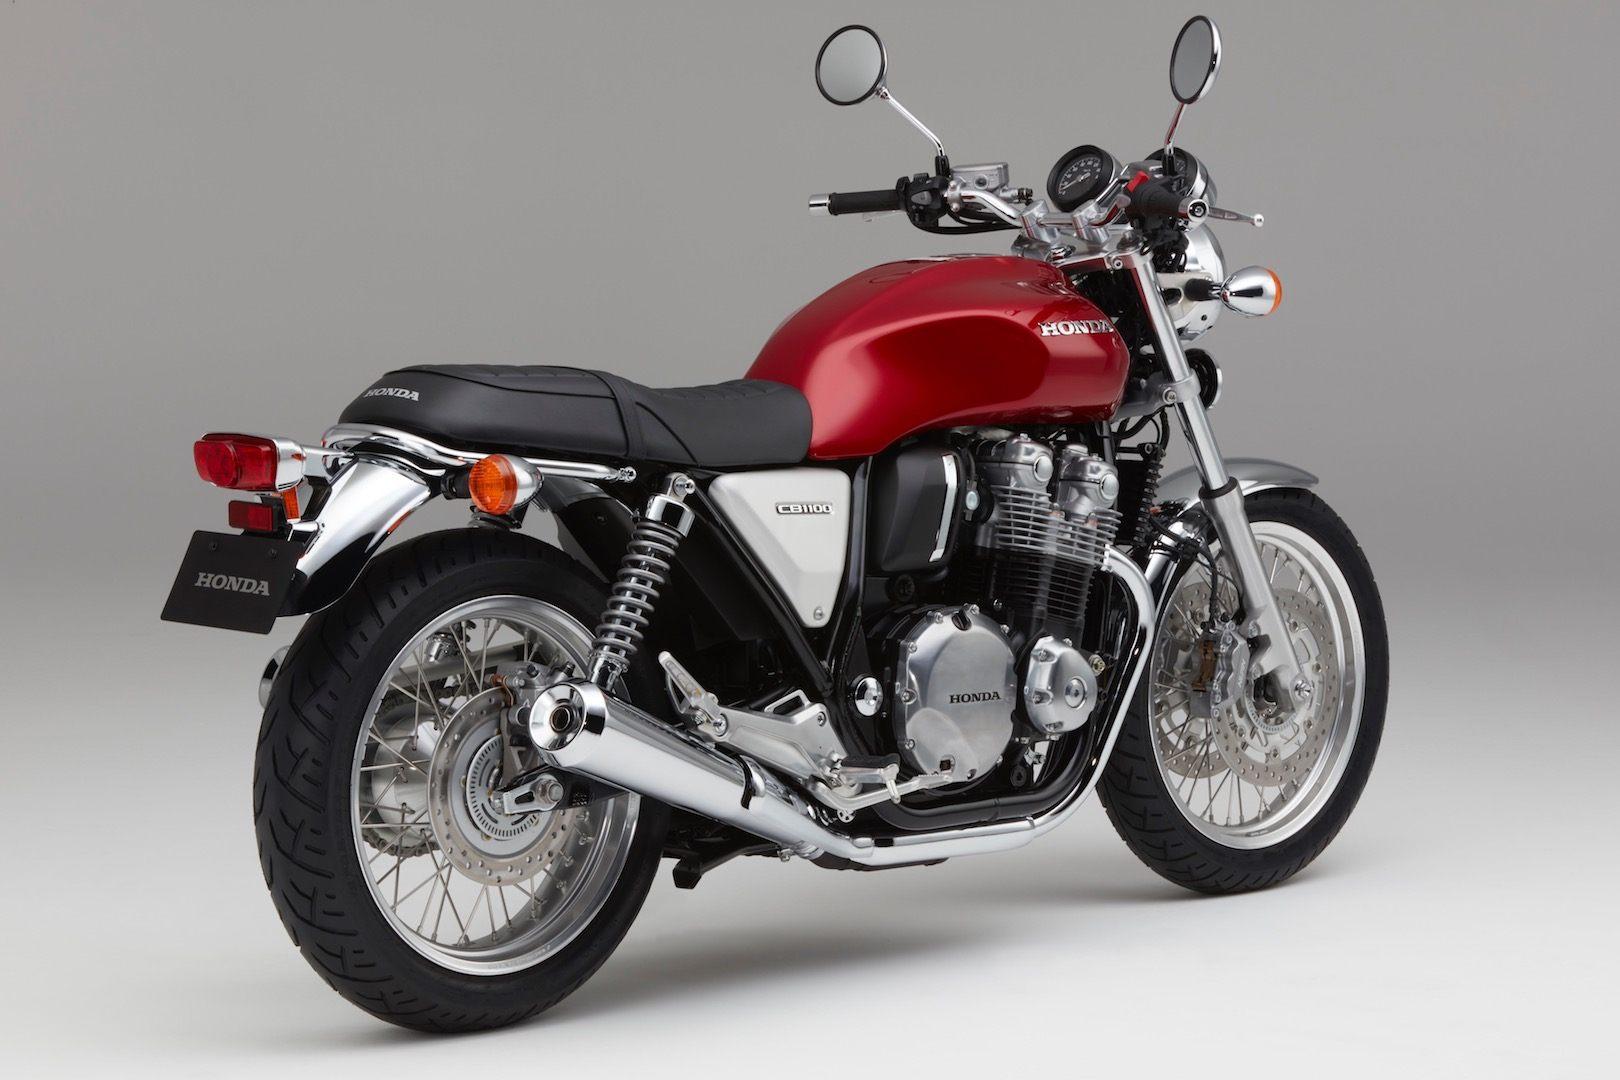 2017 honda cb1100 ex review 11 fast facts